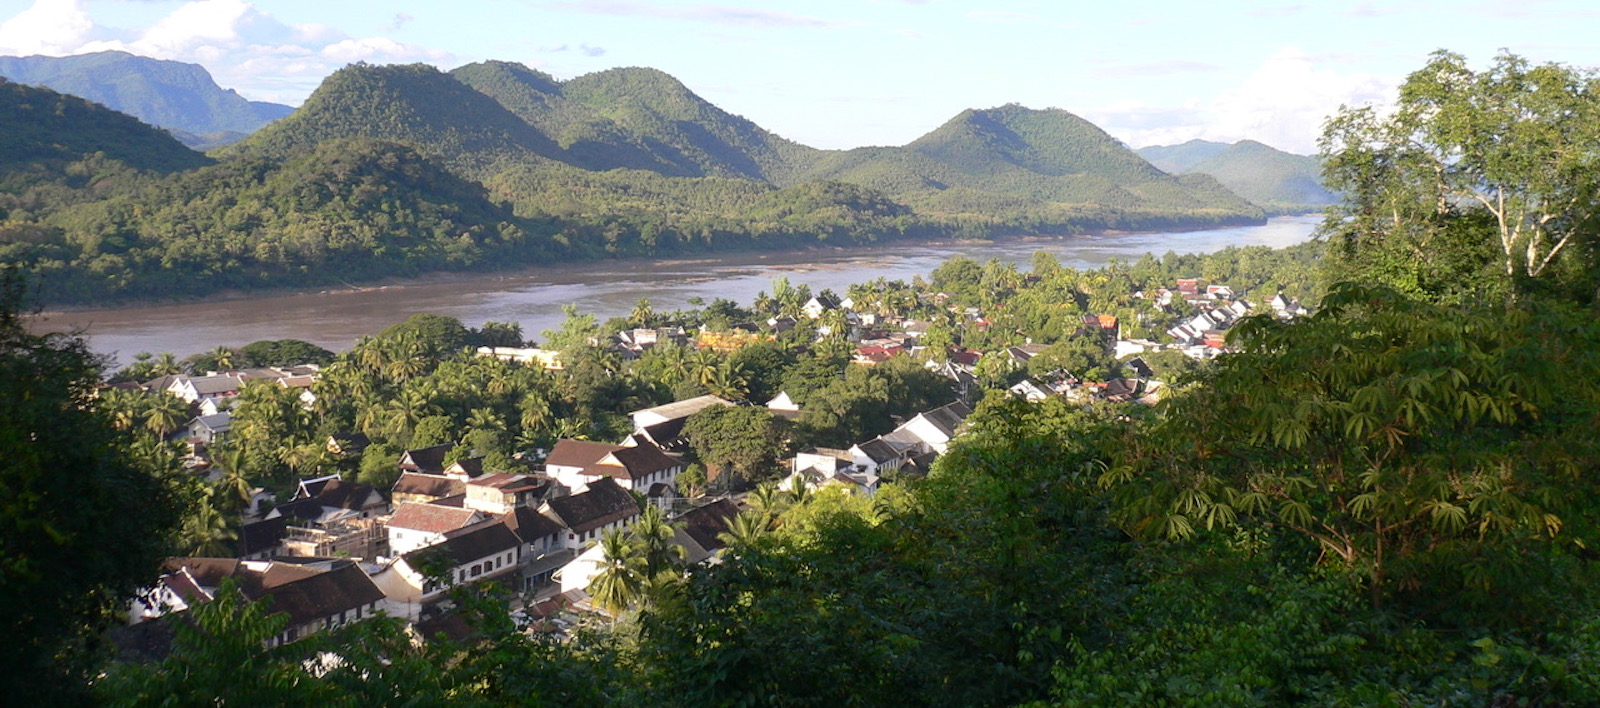 Mekong at Luang Prabang (Photo: Milton Osborne)